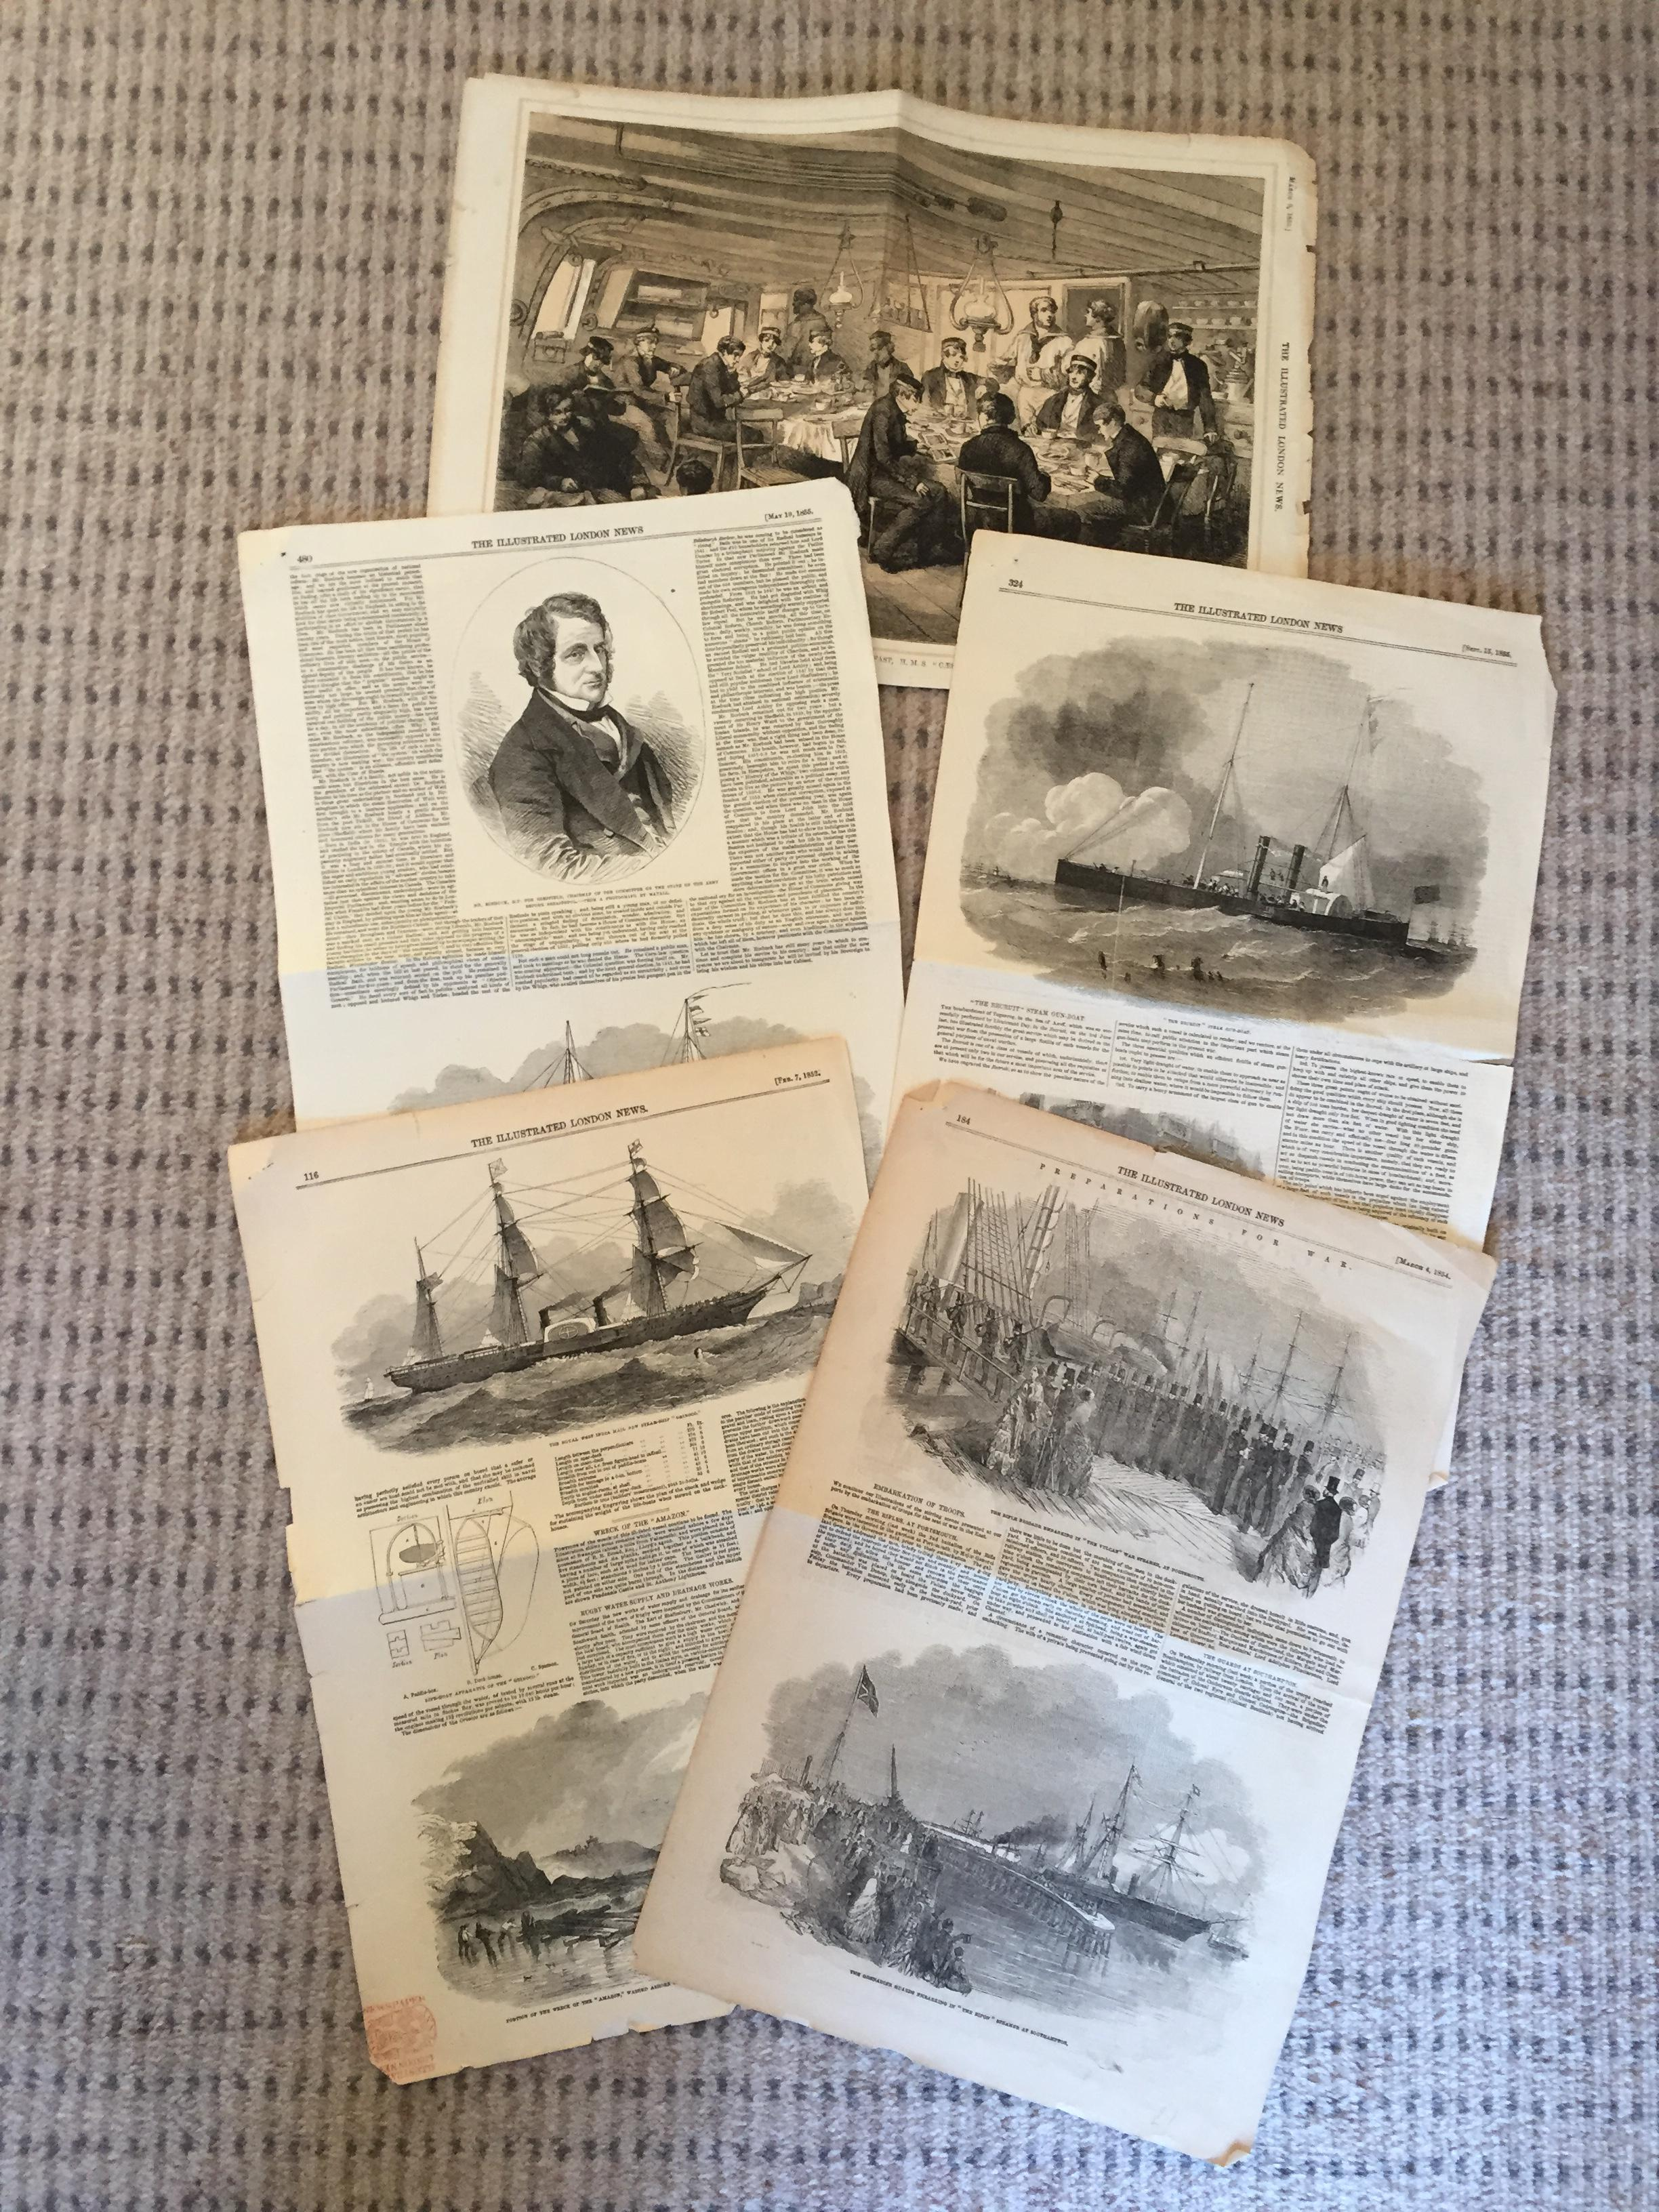 ARTICLES FROM THE 1800's FROM THE ILLUSTRATED LONDON NEWS